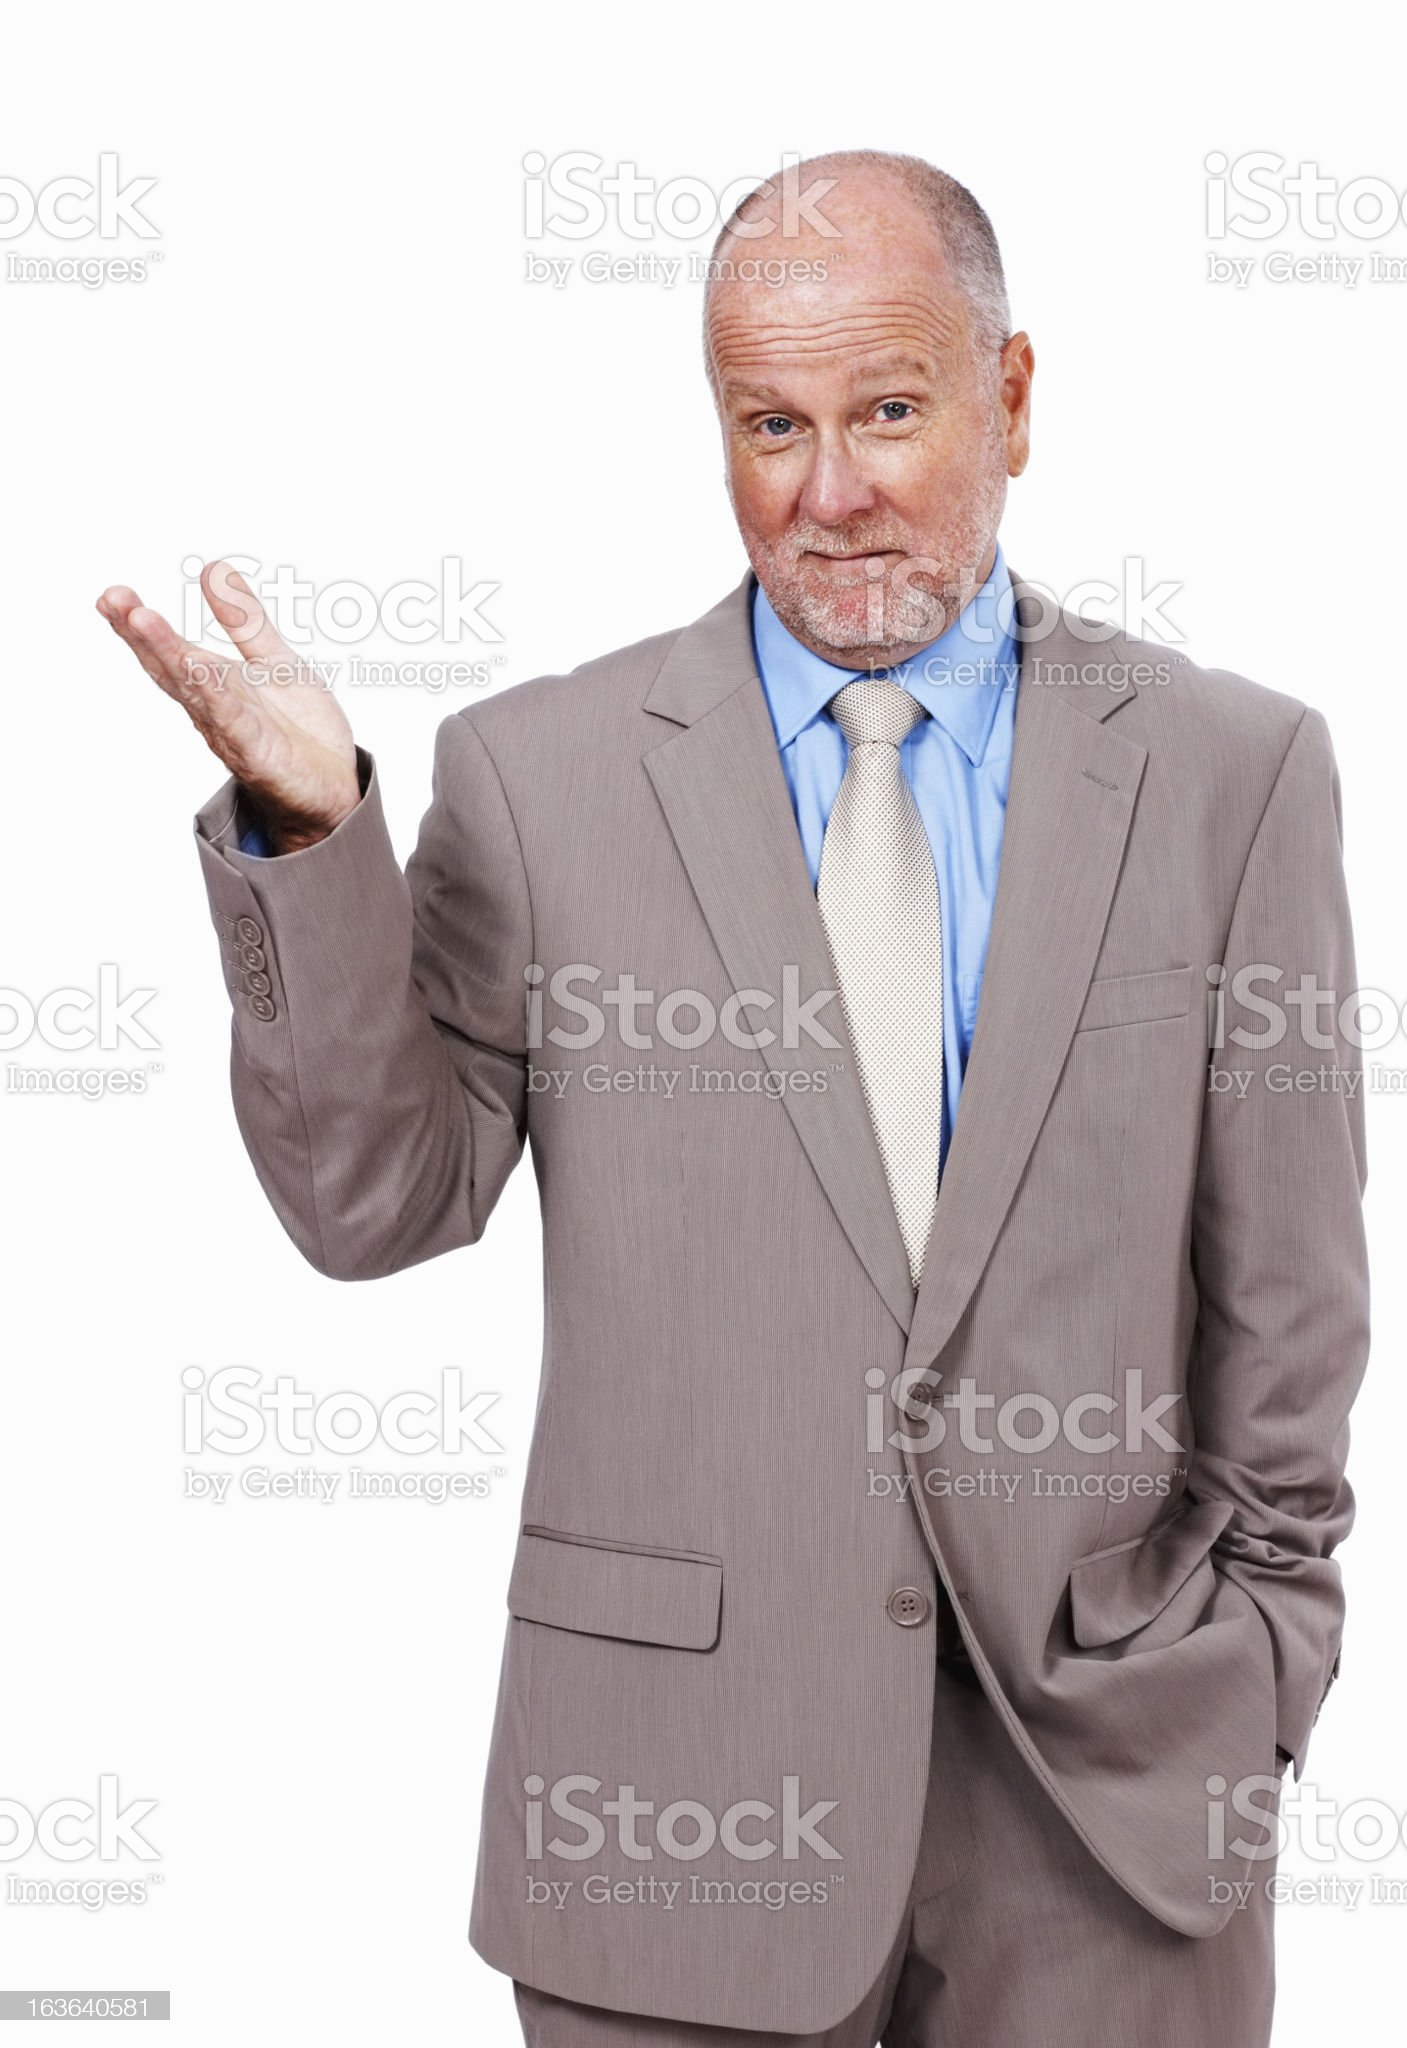 Puzzled businessman gesturing with his hand royalty-free stock photo